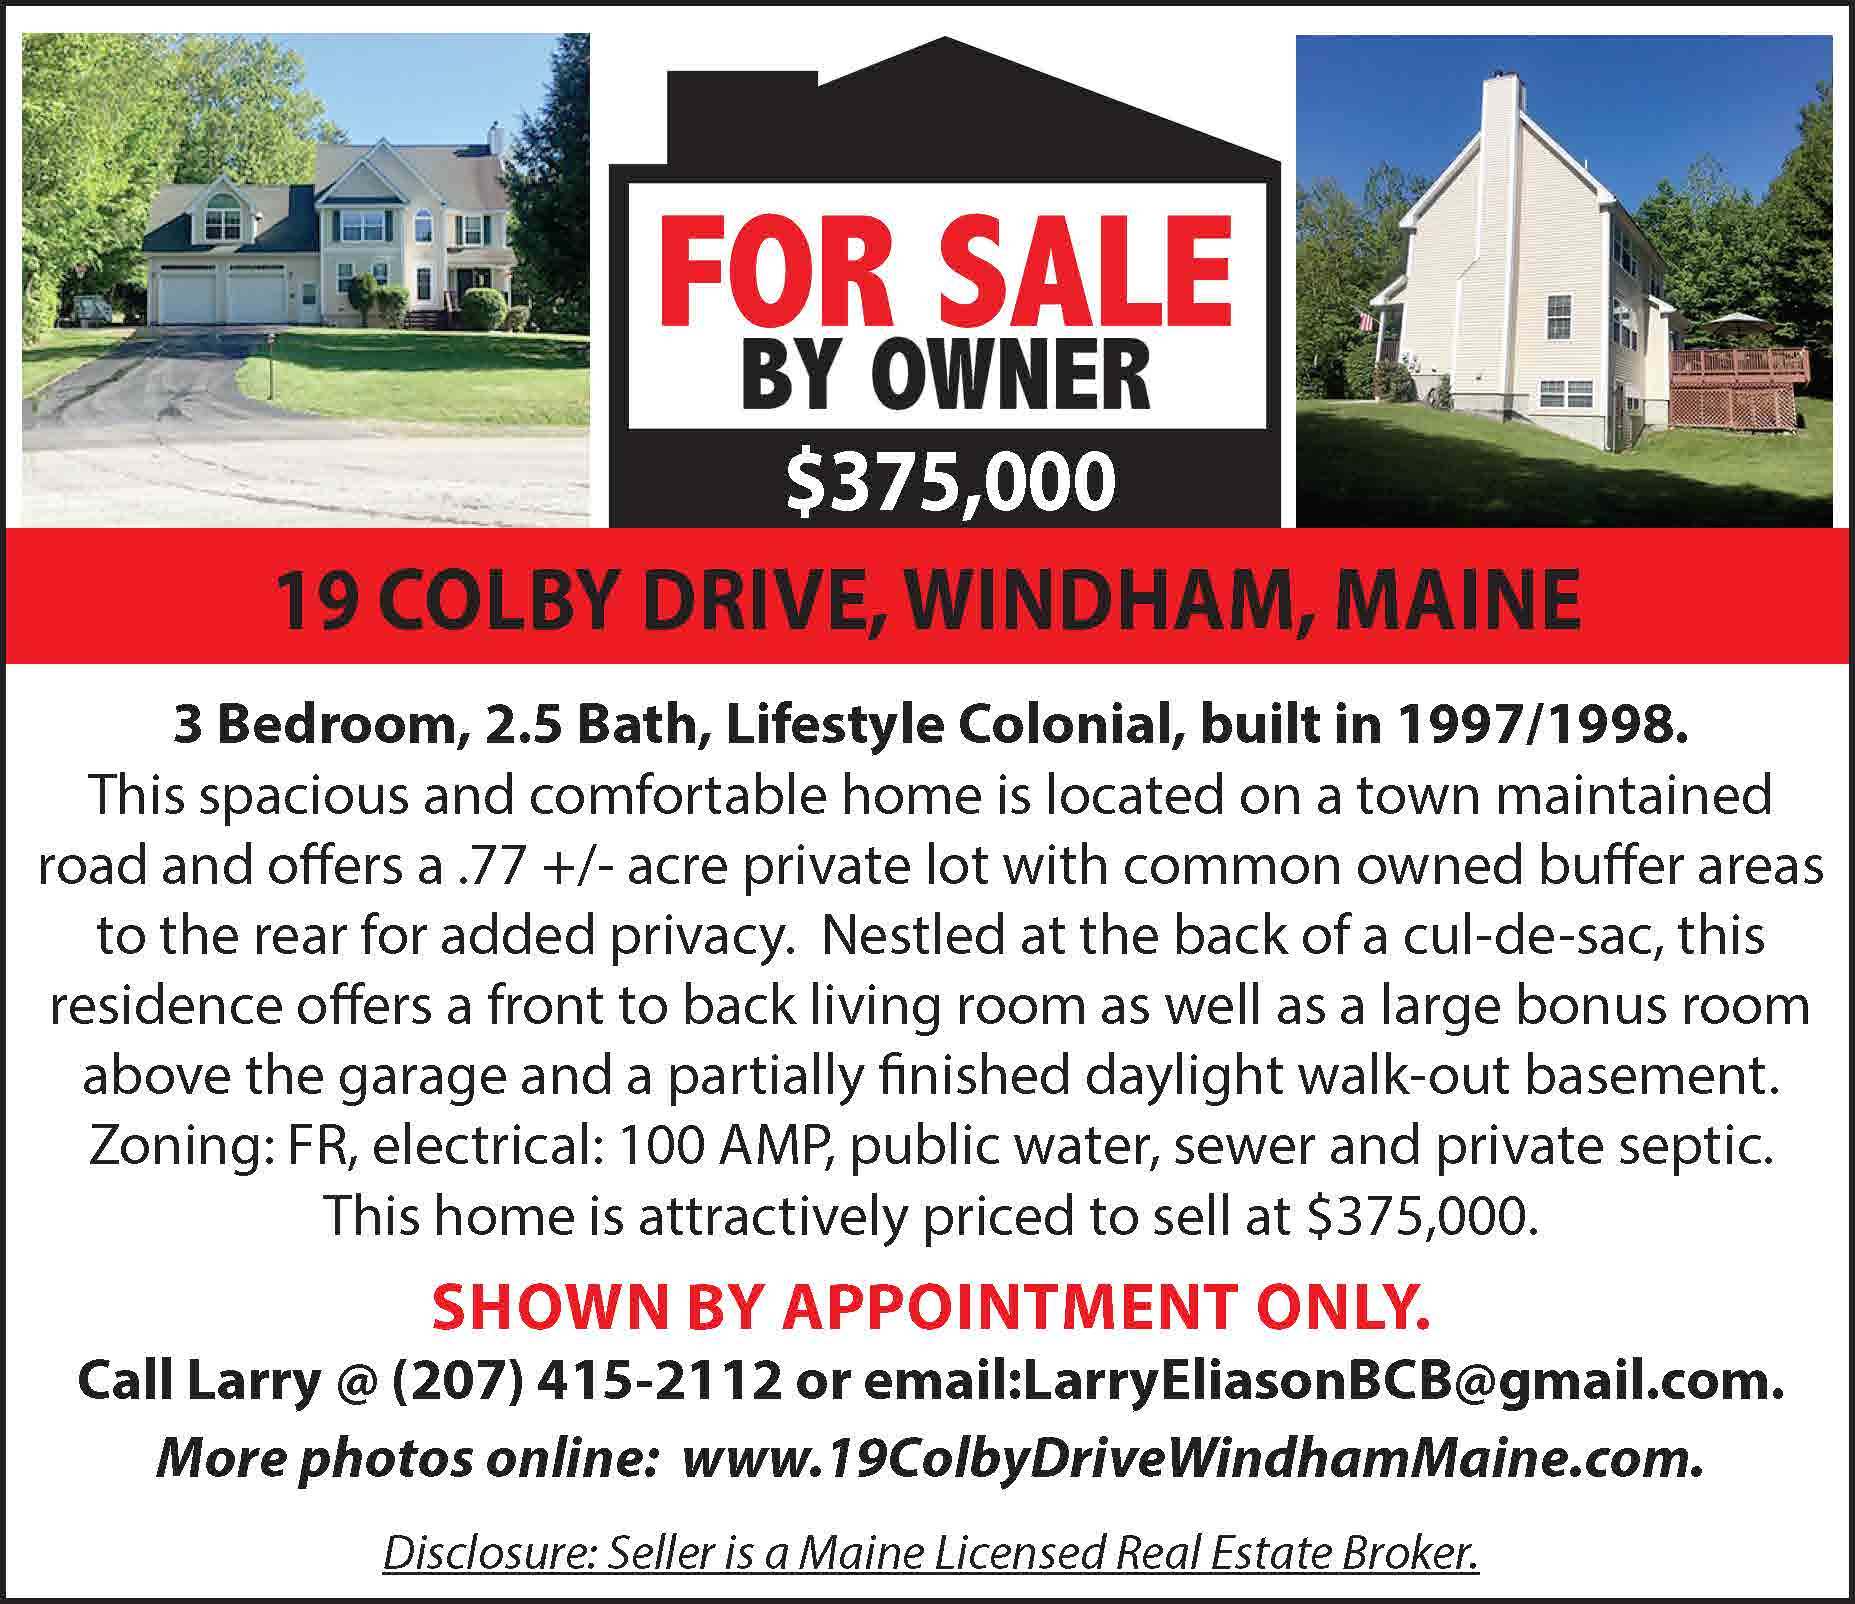 https://www.19colbydrivewindhammaine.com/